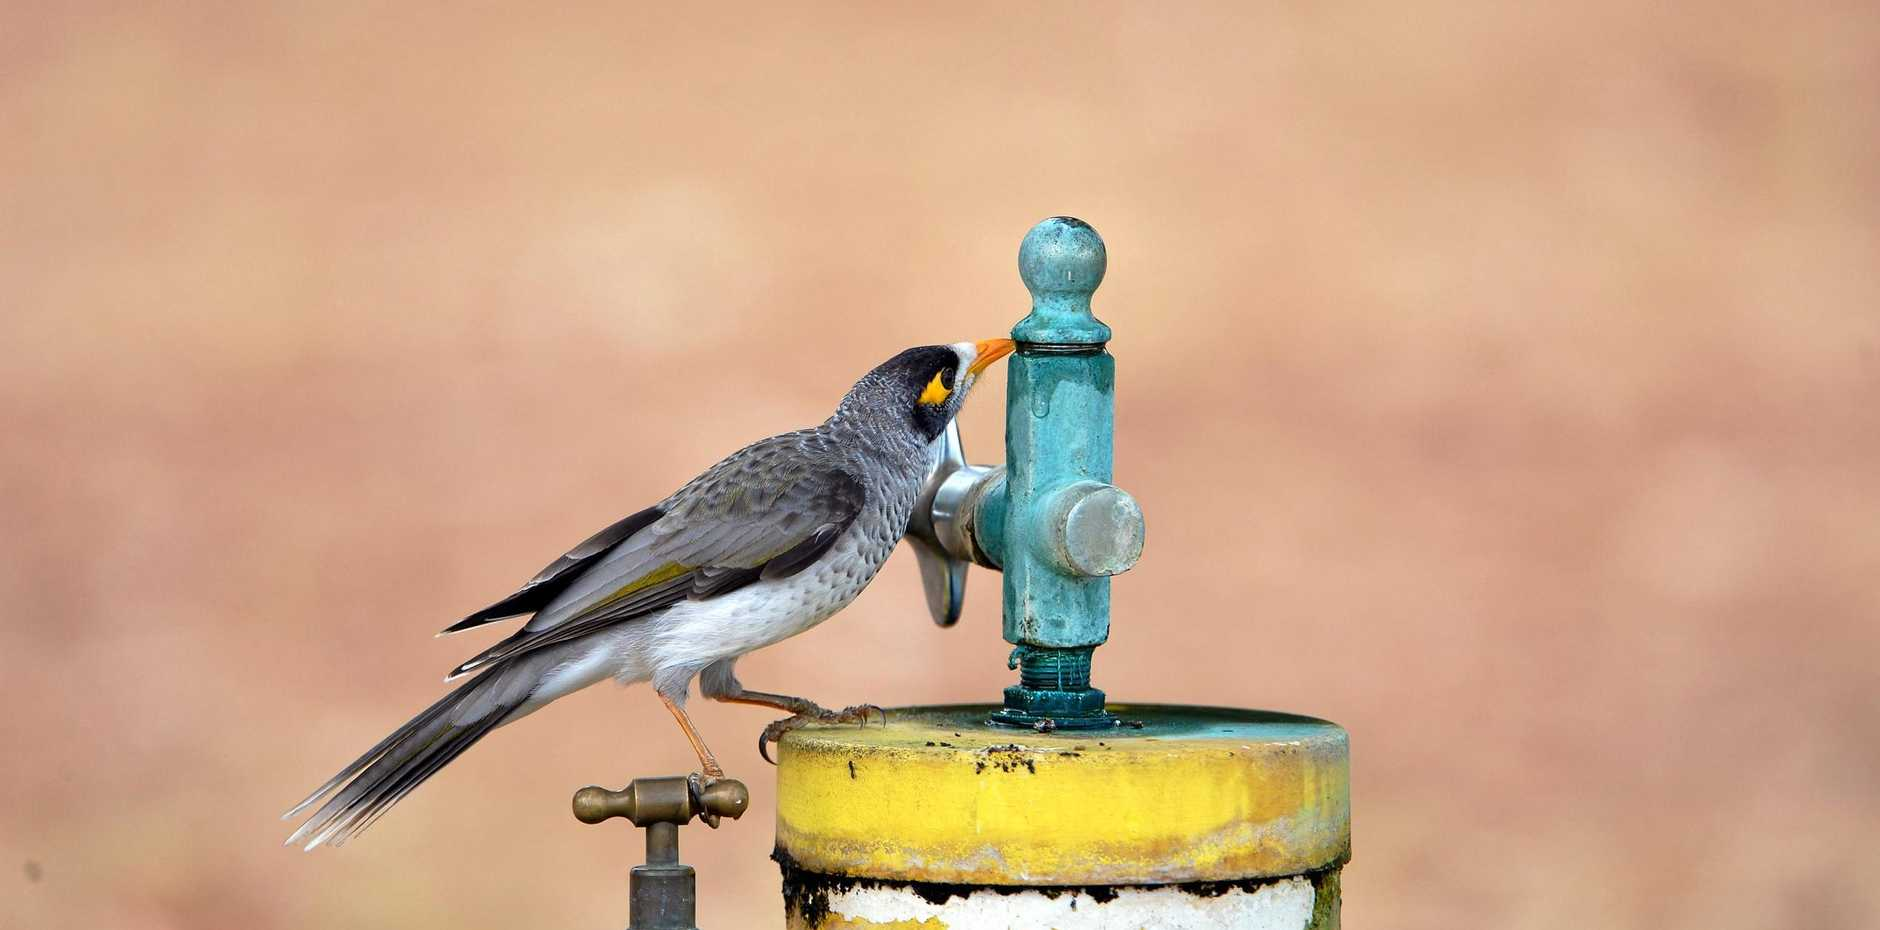 A brid takes a drink from a leaking tap